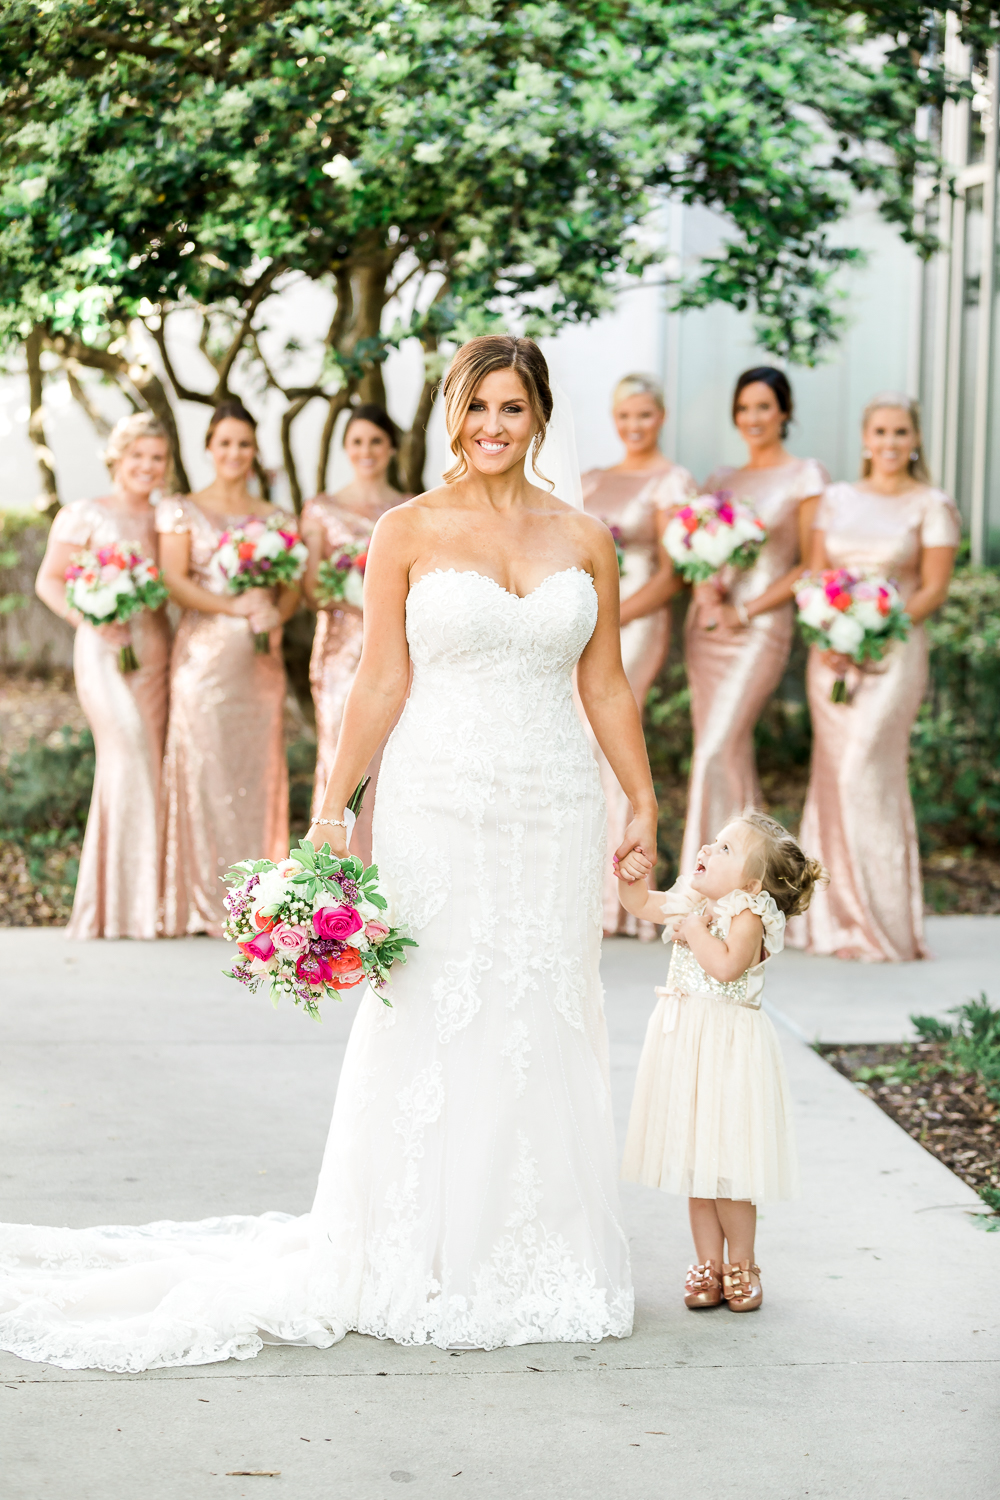 Bride with her bridal party in Florida Yacht club wedding in Jacksonville, FL